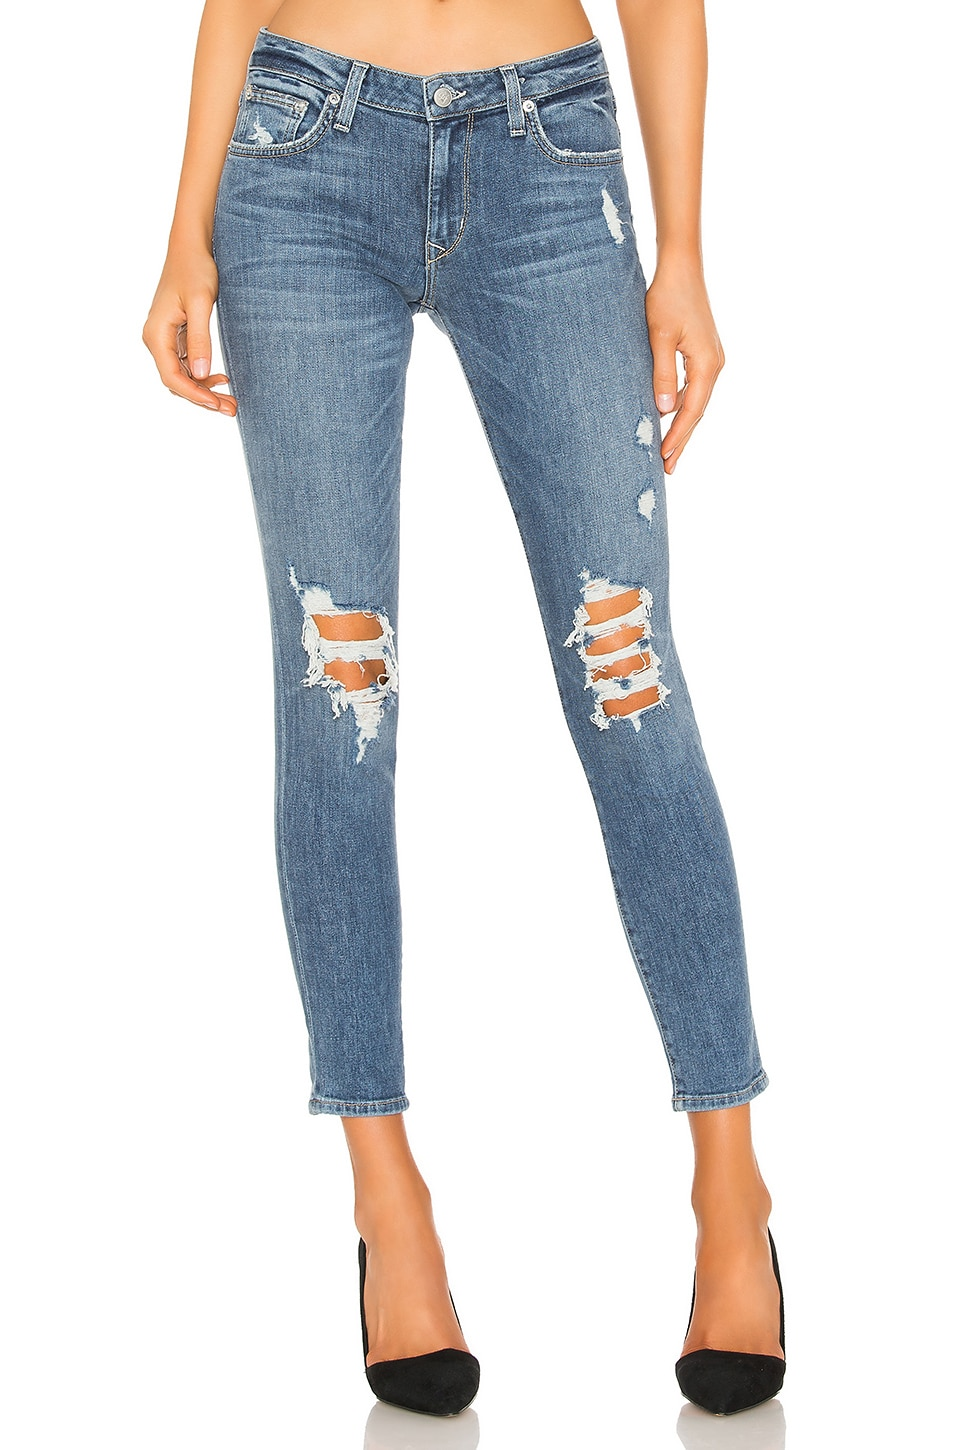 Lovers + Friends Ricky Skinny Jean in Crescent